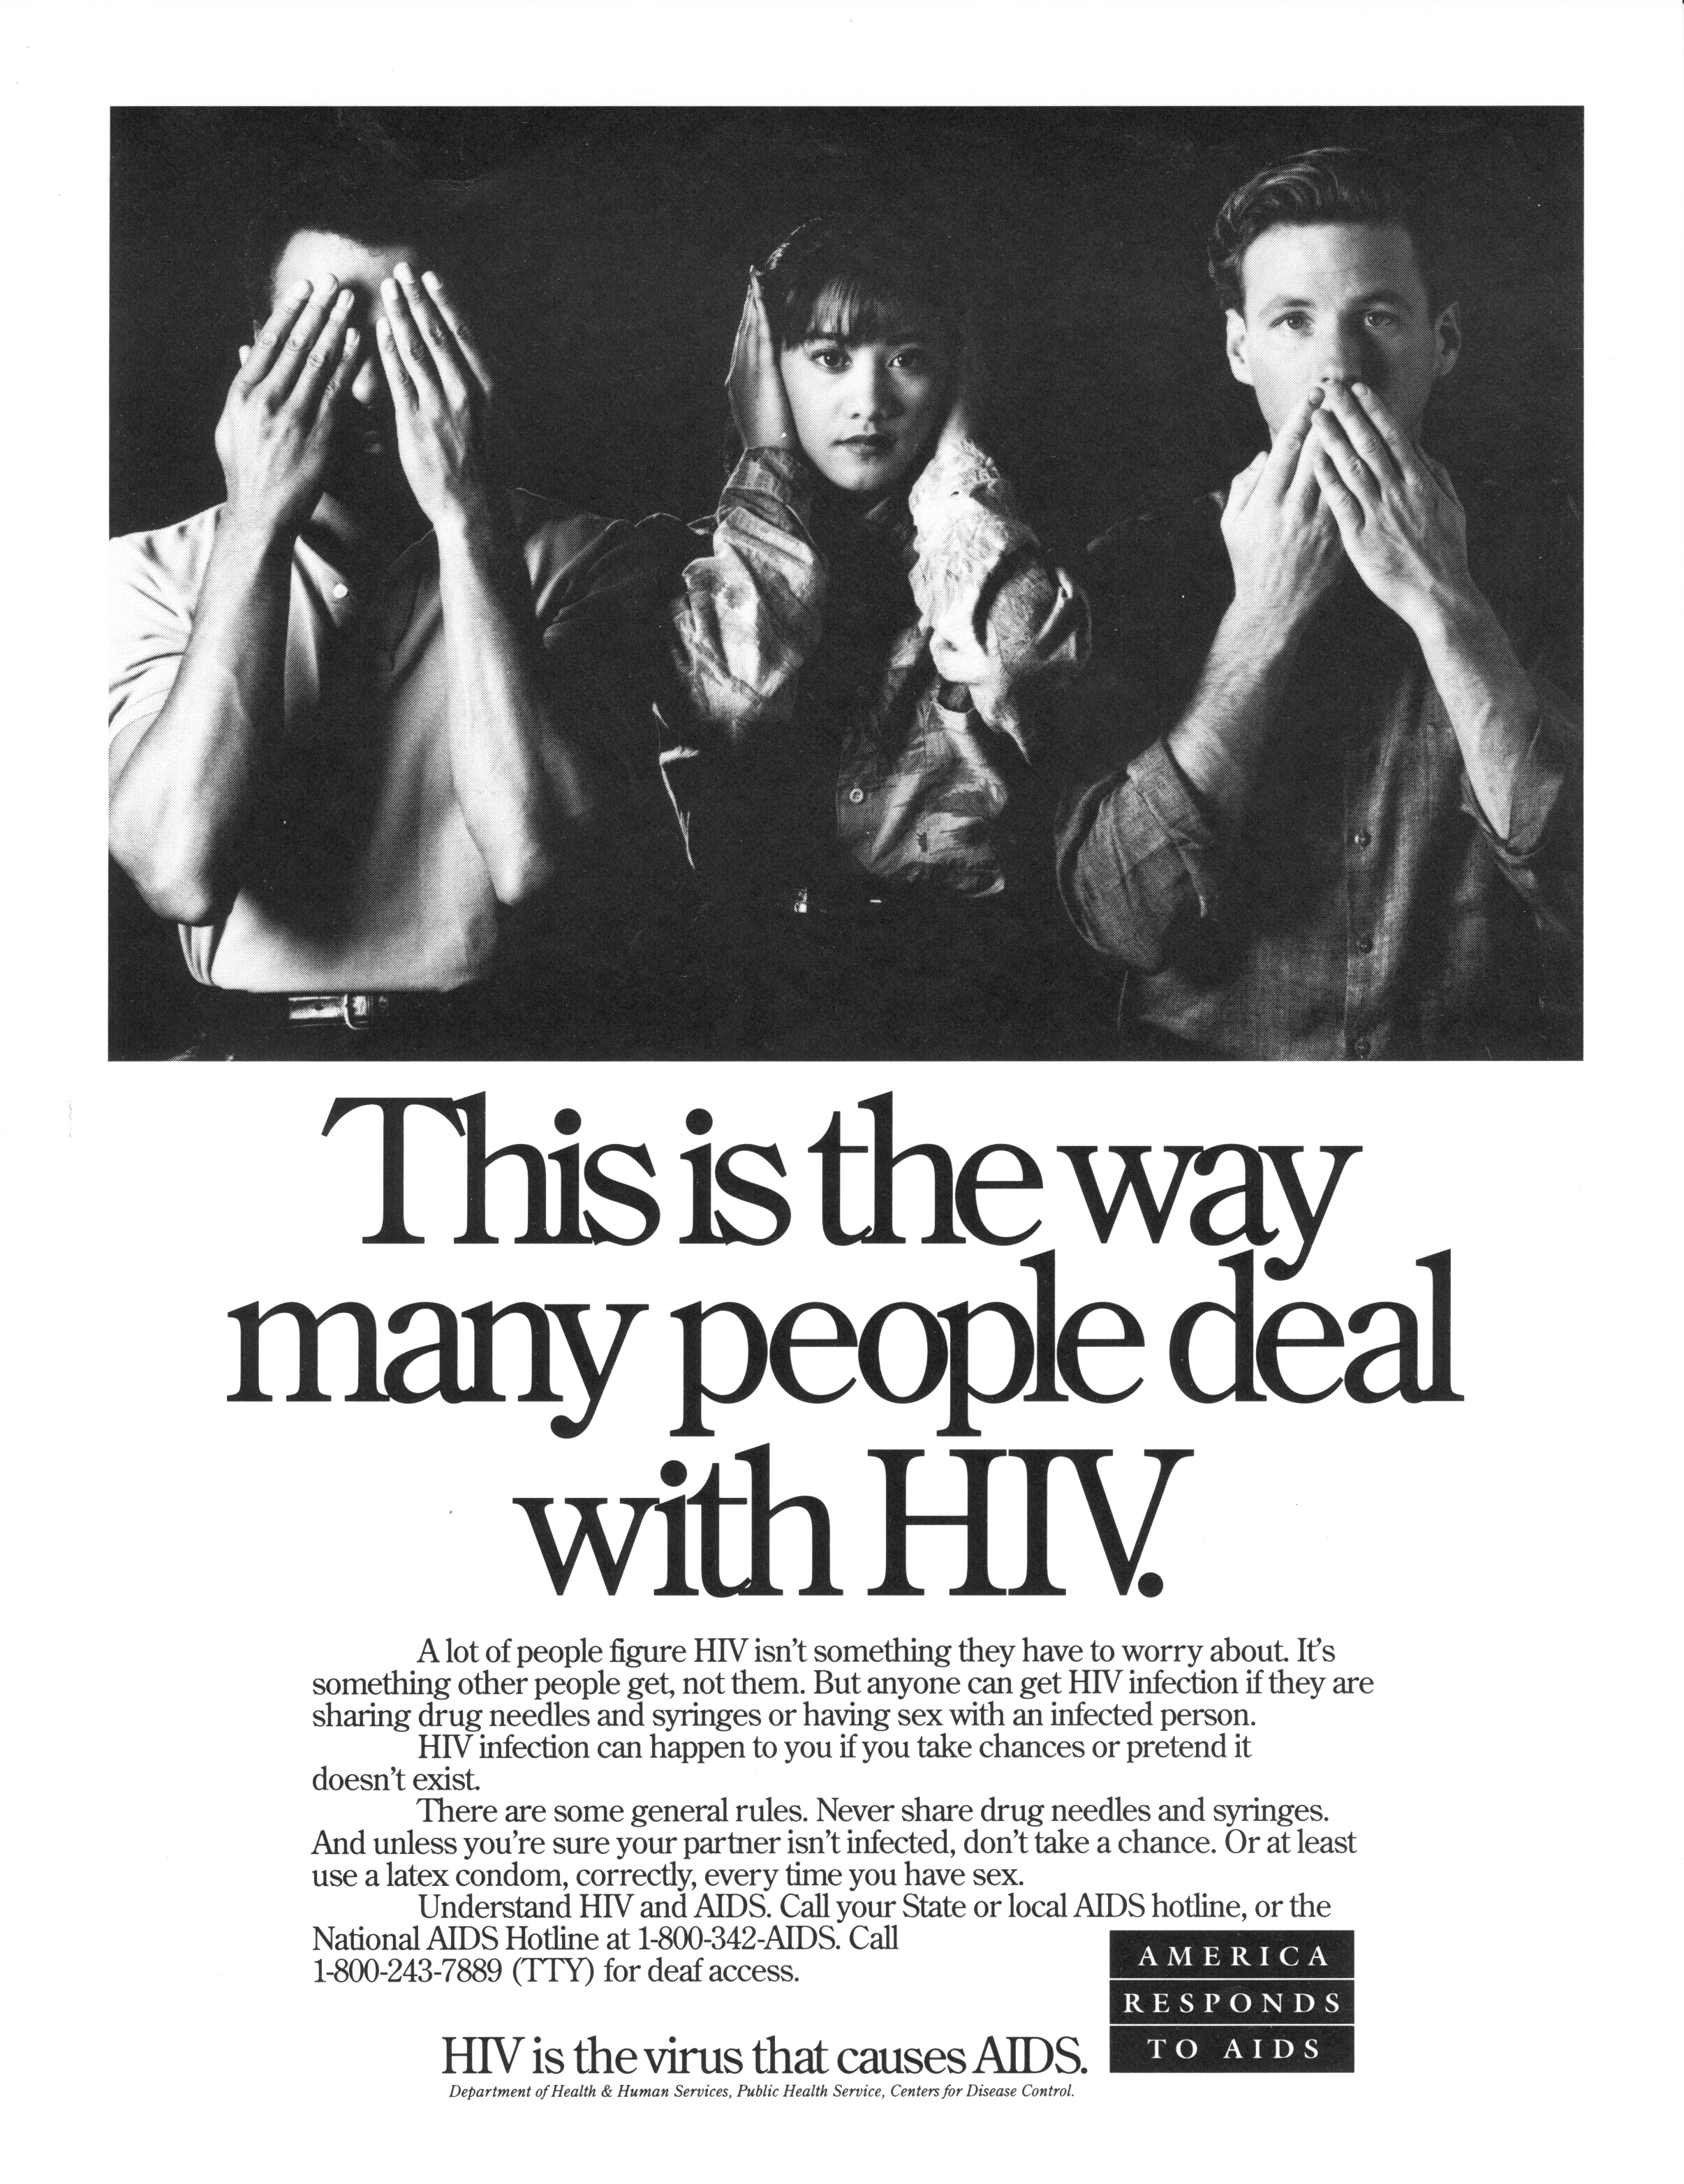 This is the way many people deal with HIV